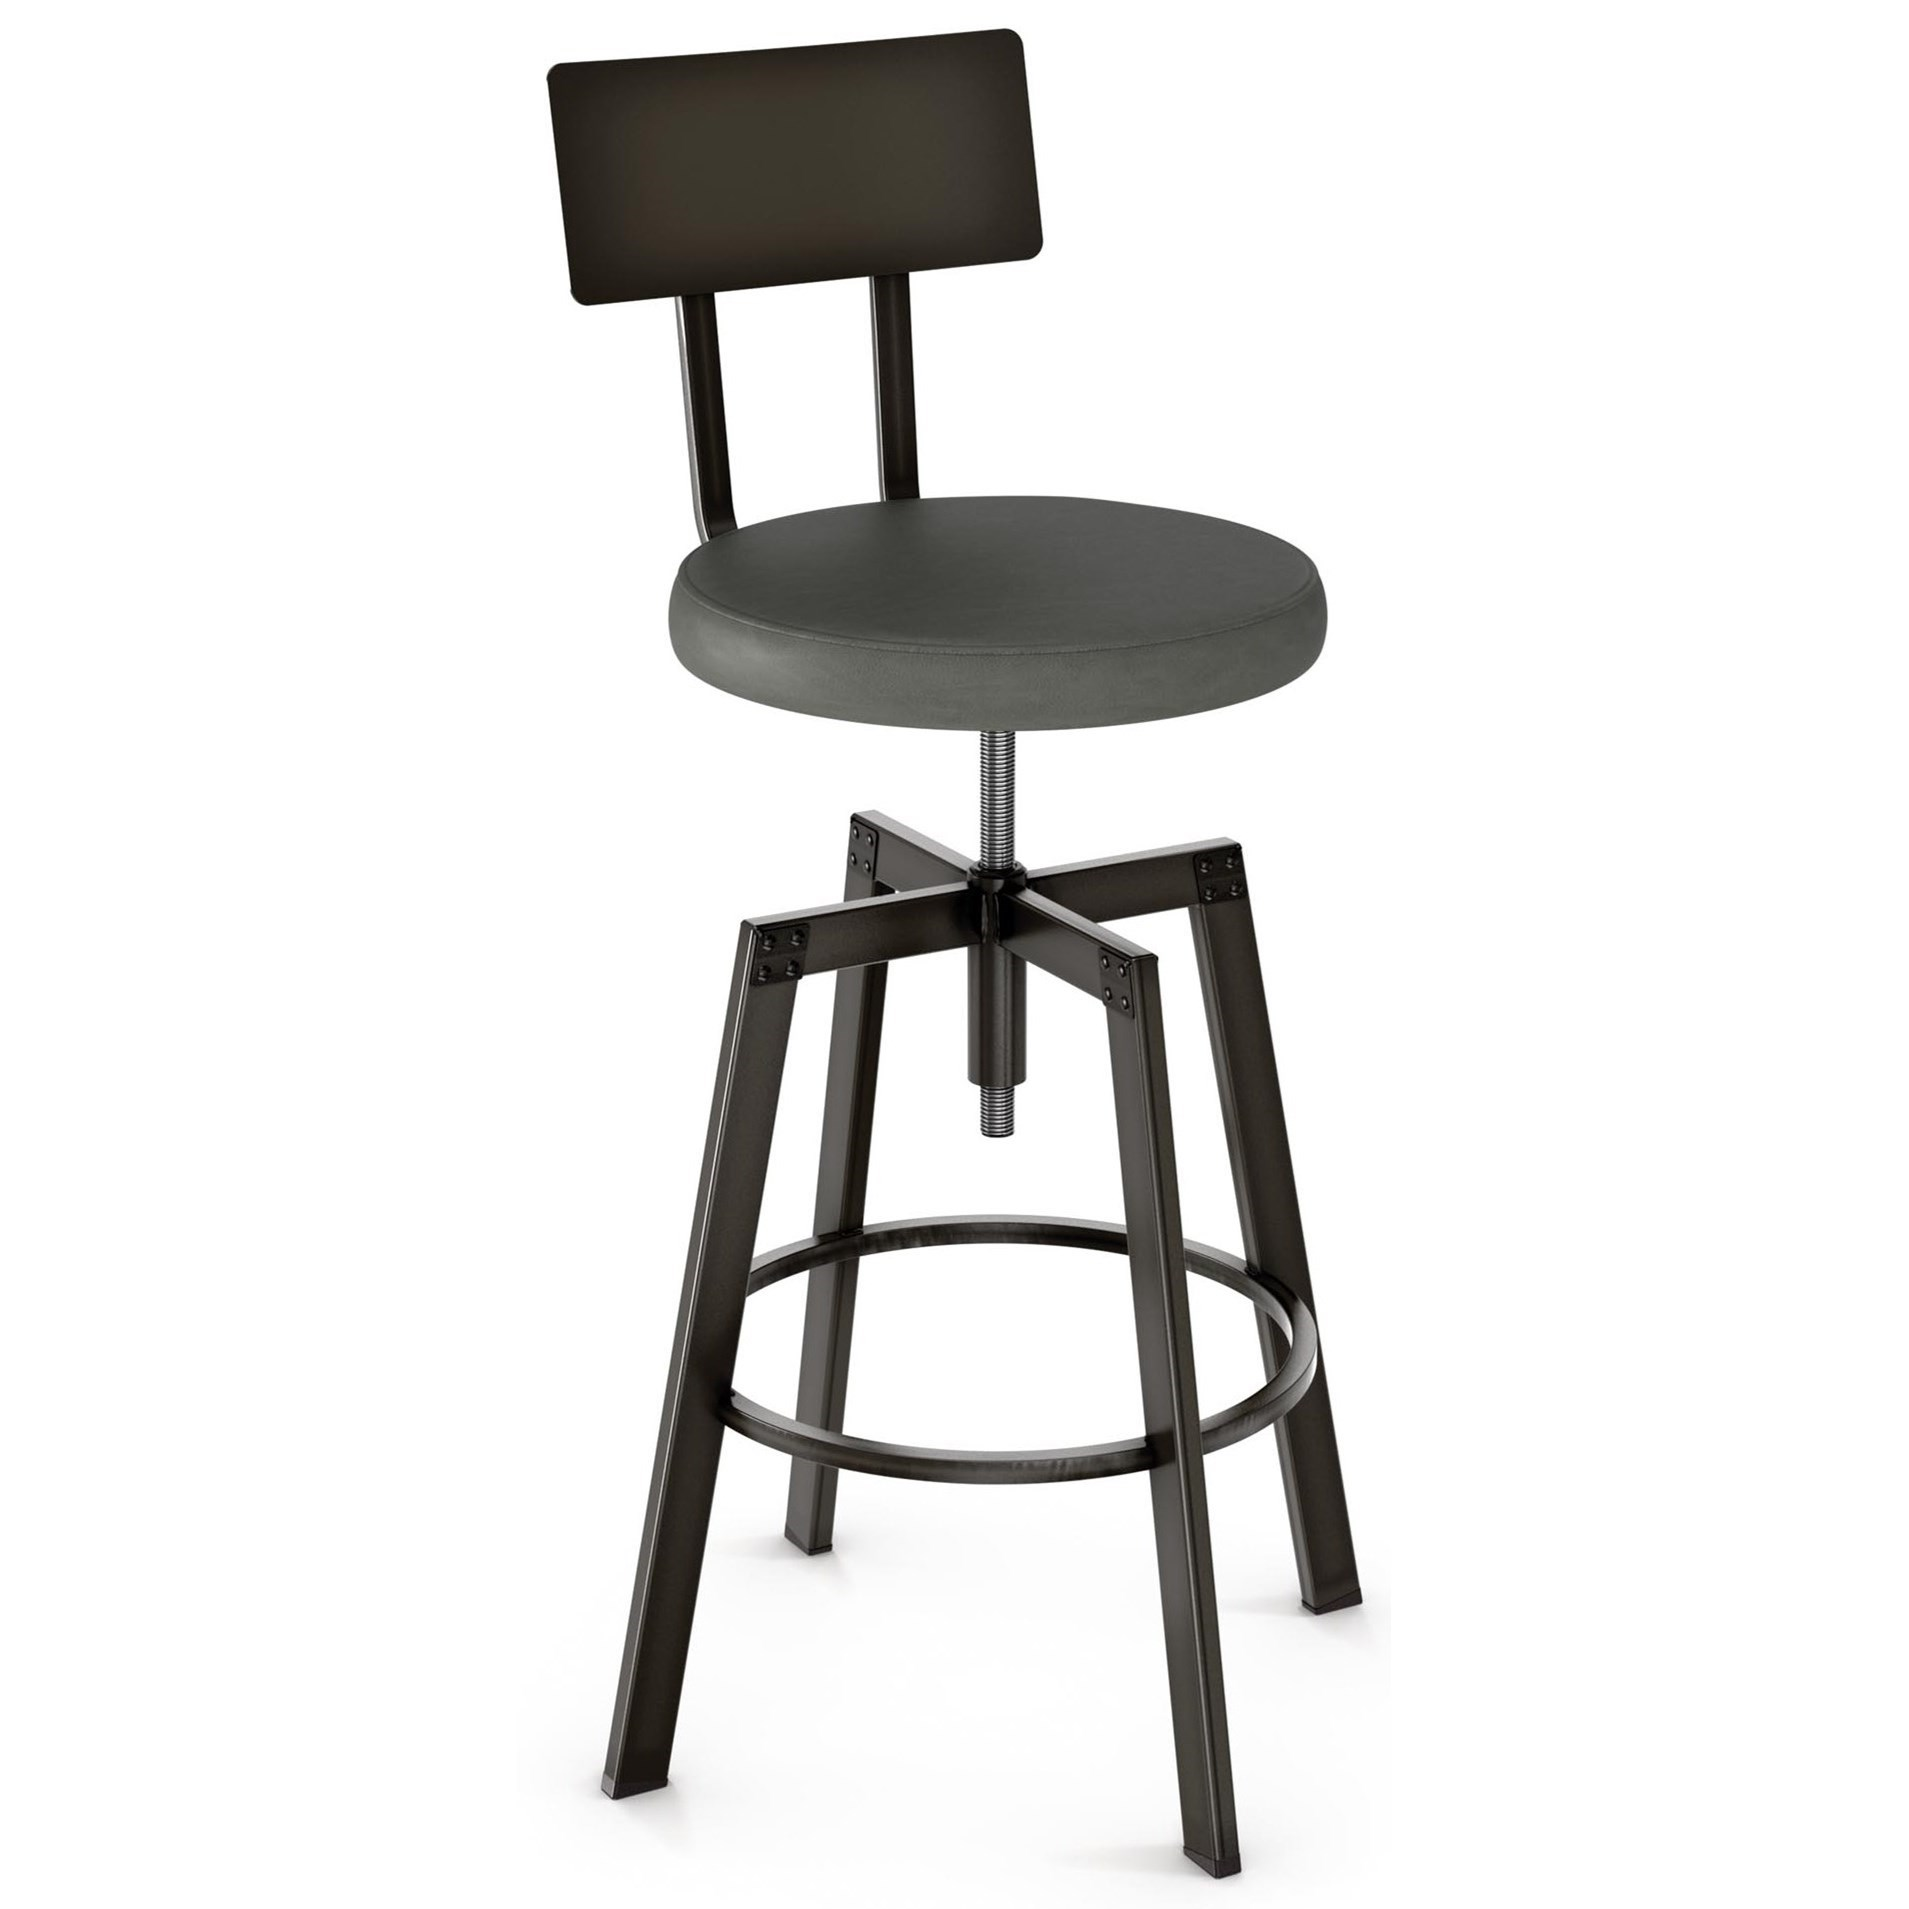 Architect Screw Stool with Cushion Seat